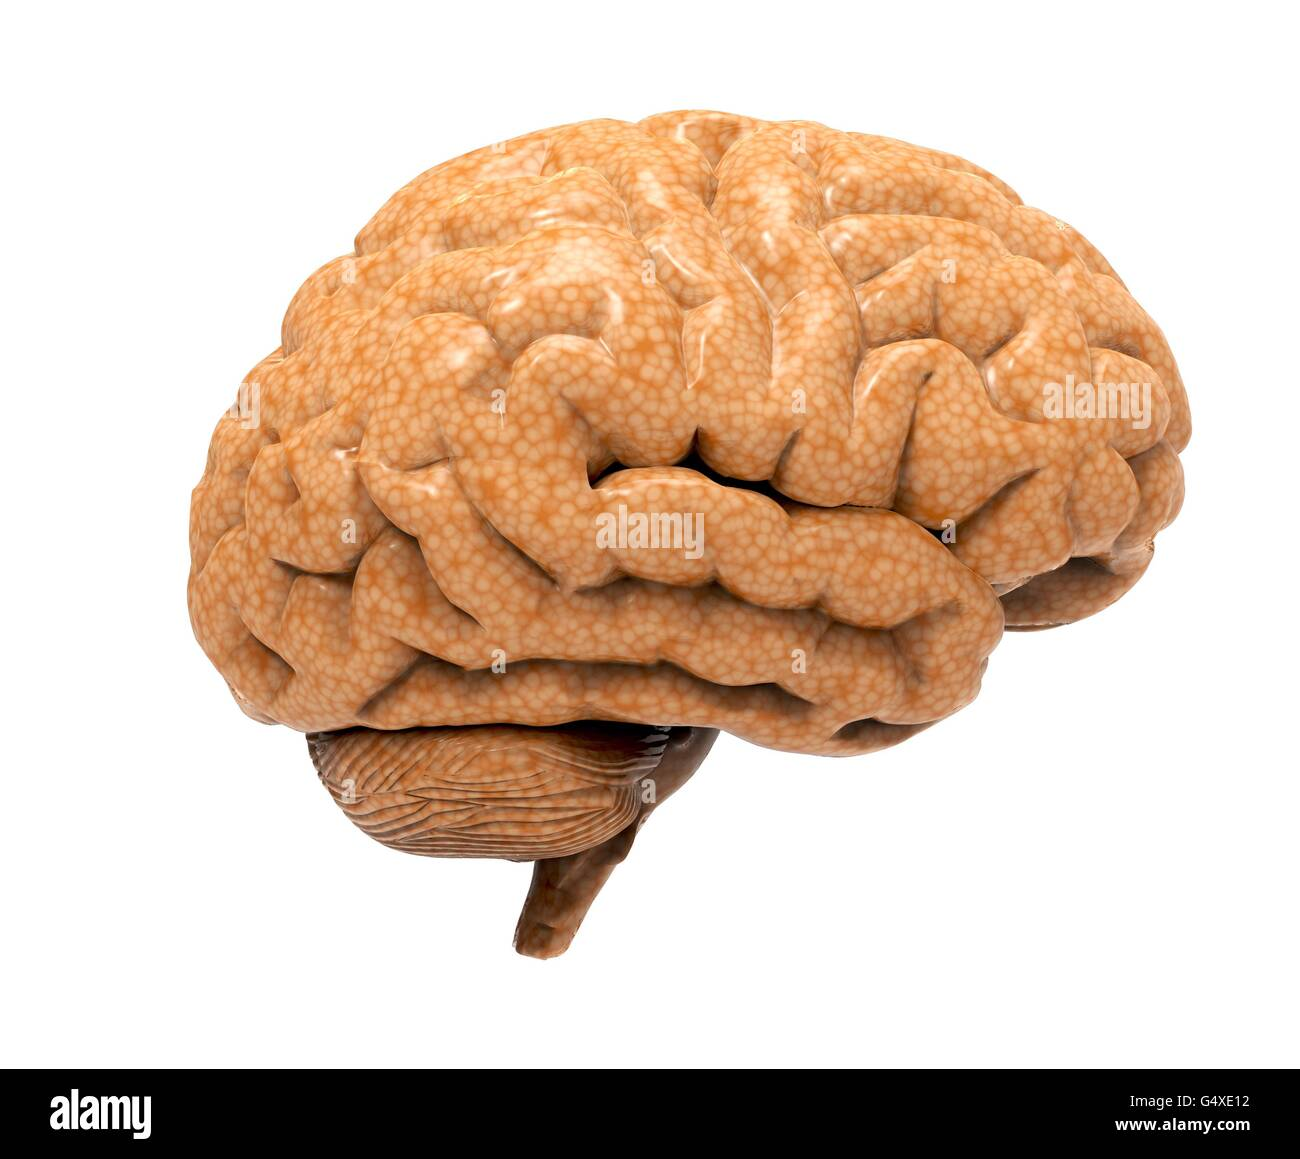 brain isolated on a white back ground - Stock Image